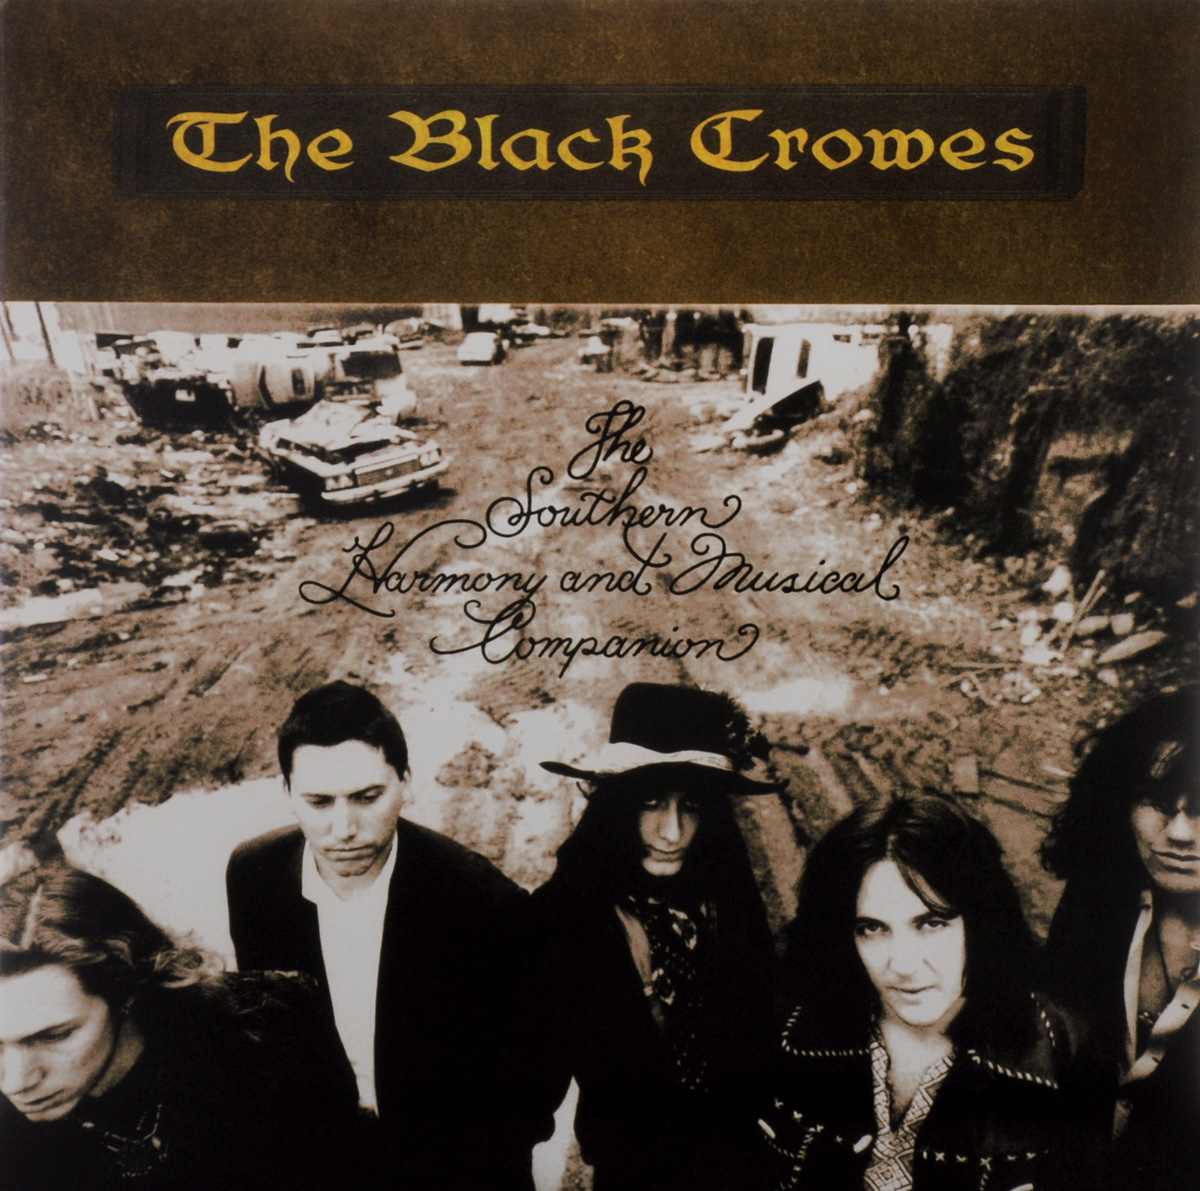 The Black Crowes The Black Crowes. The Southern Harmony And Musical Companion (2 LP) catherine douillet national harmony and its discontents